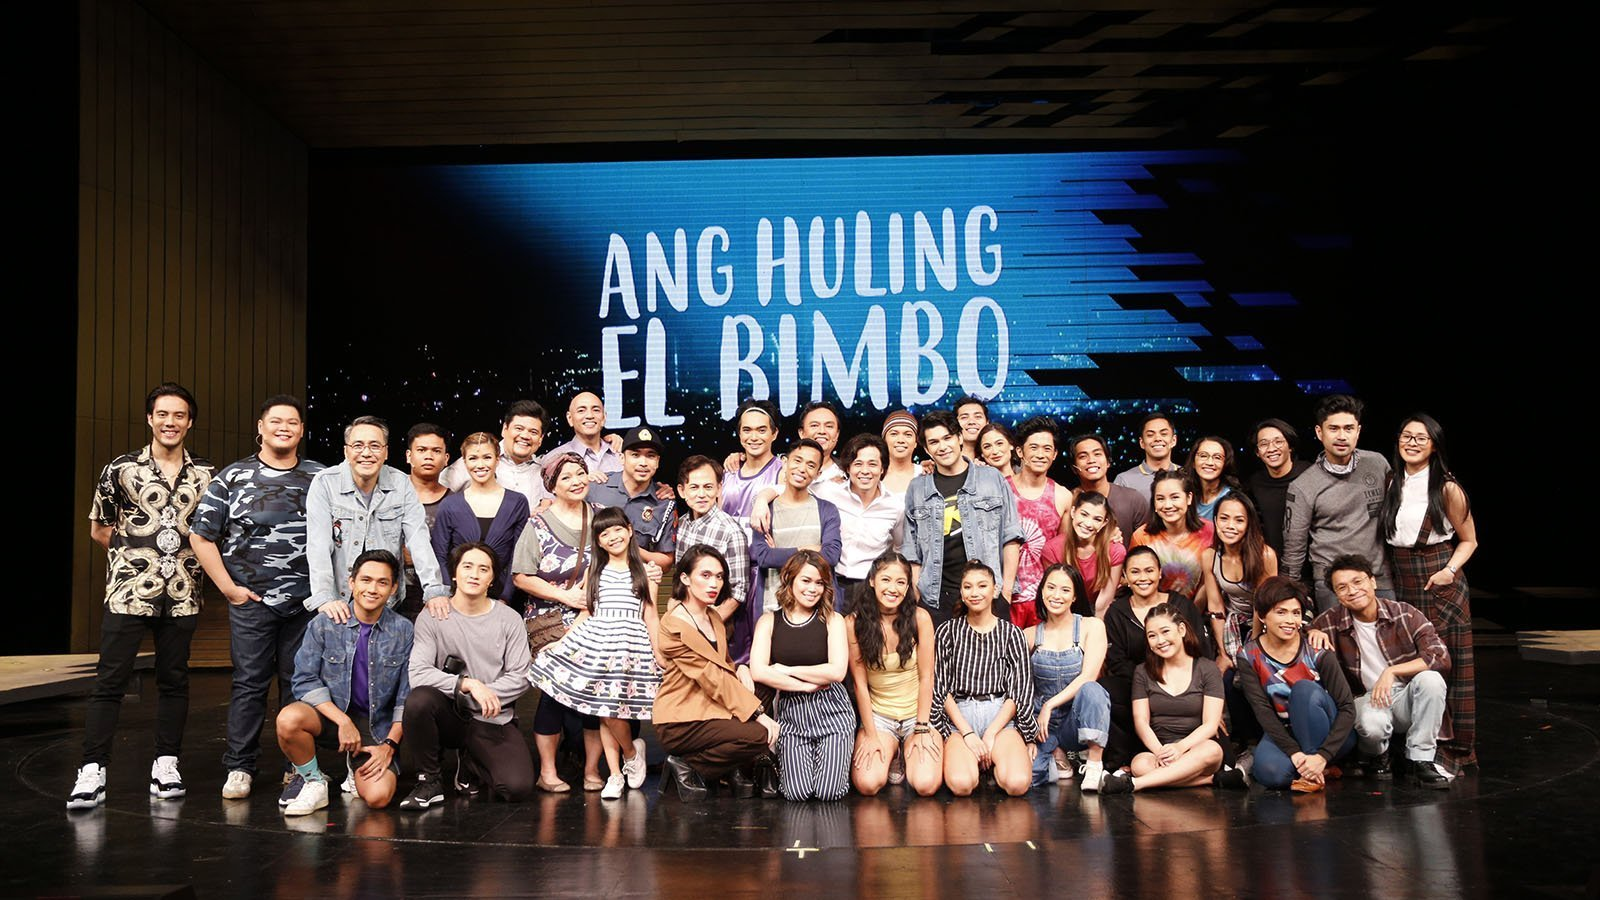 Ang Huling El Bimbo: A Night Full of Fun, Tears, and Nostalgia